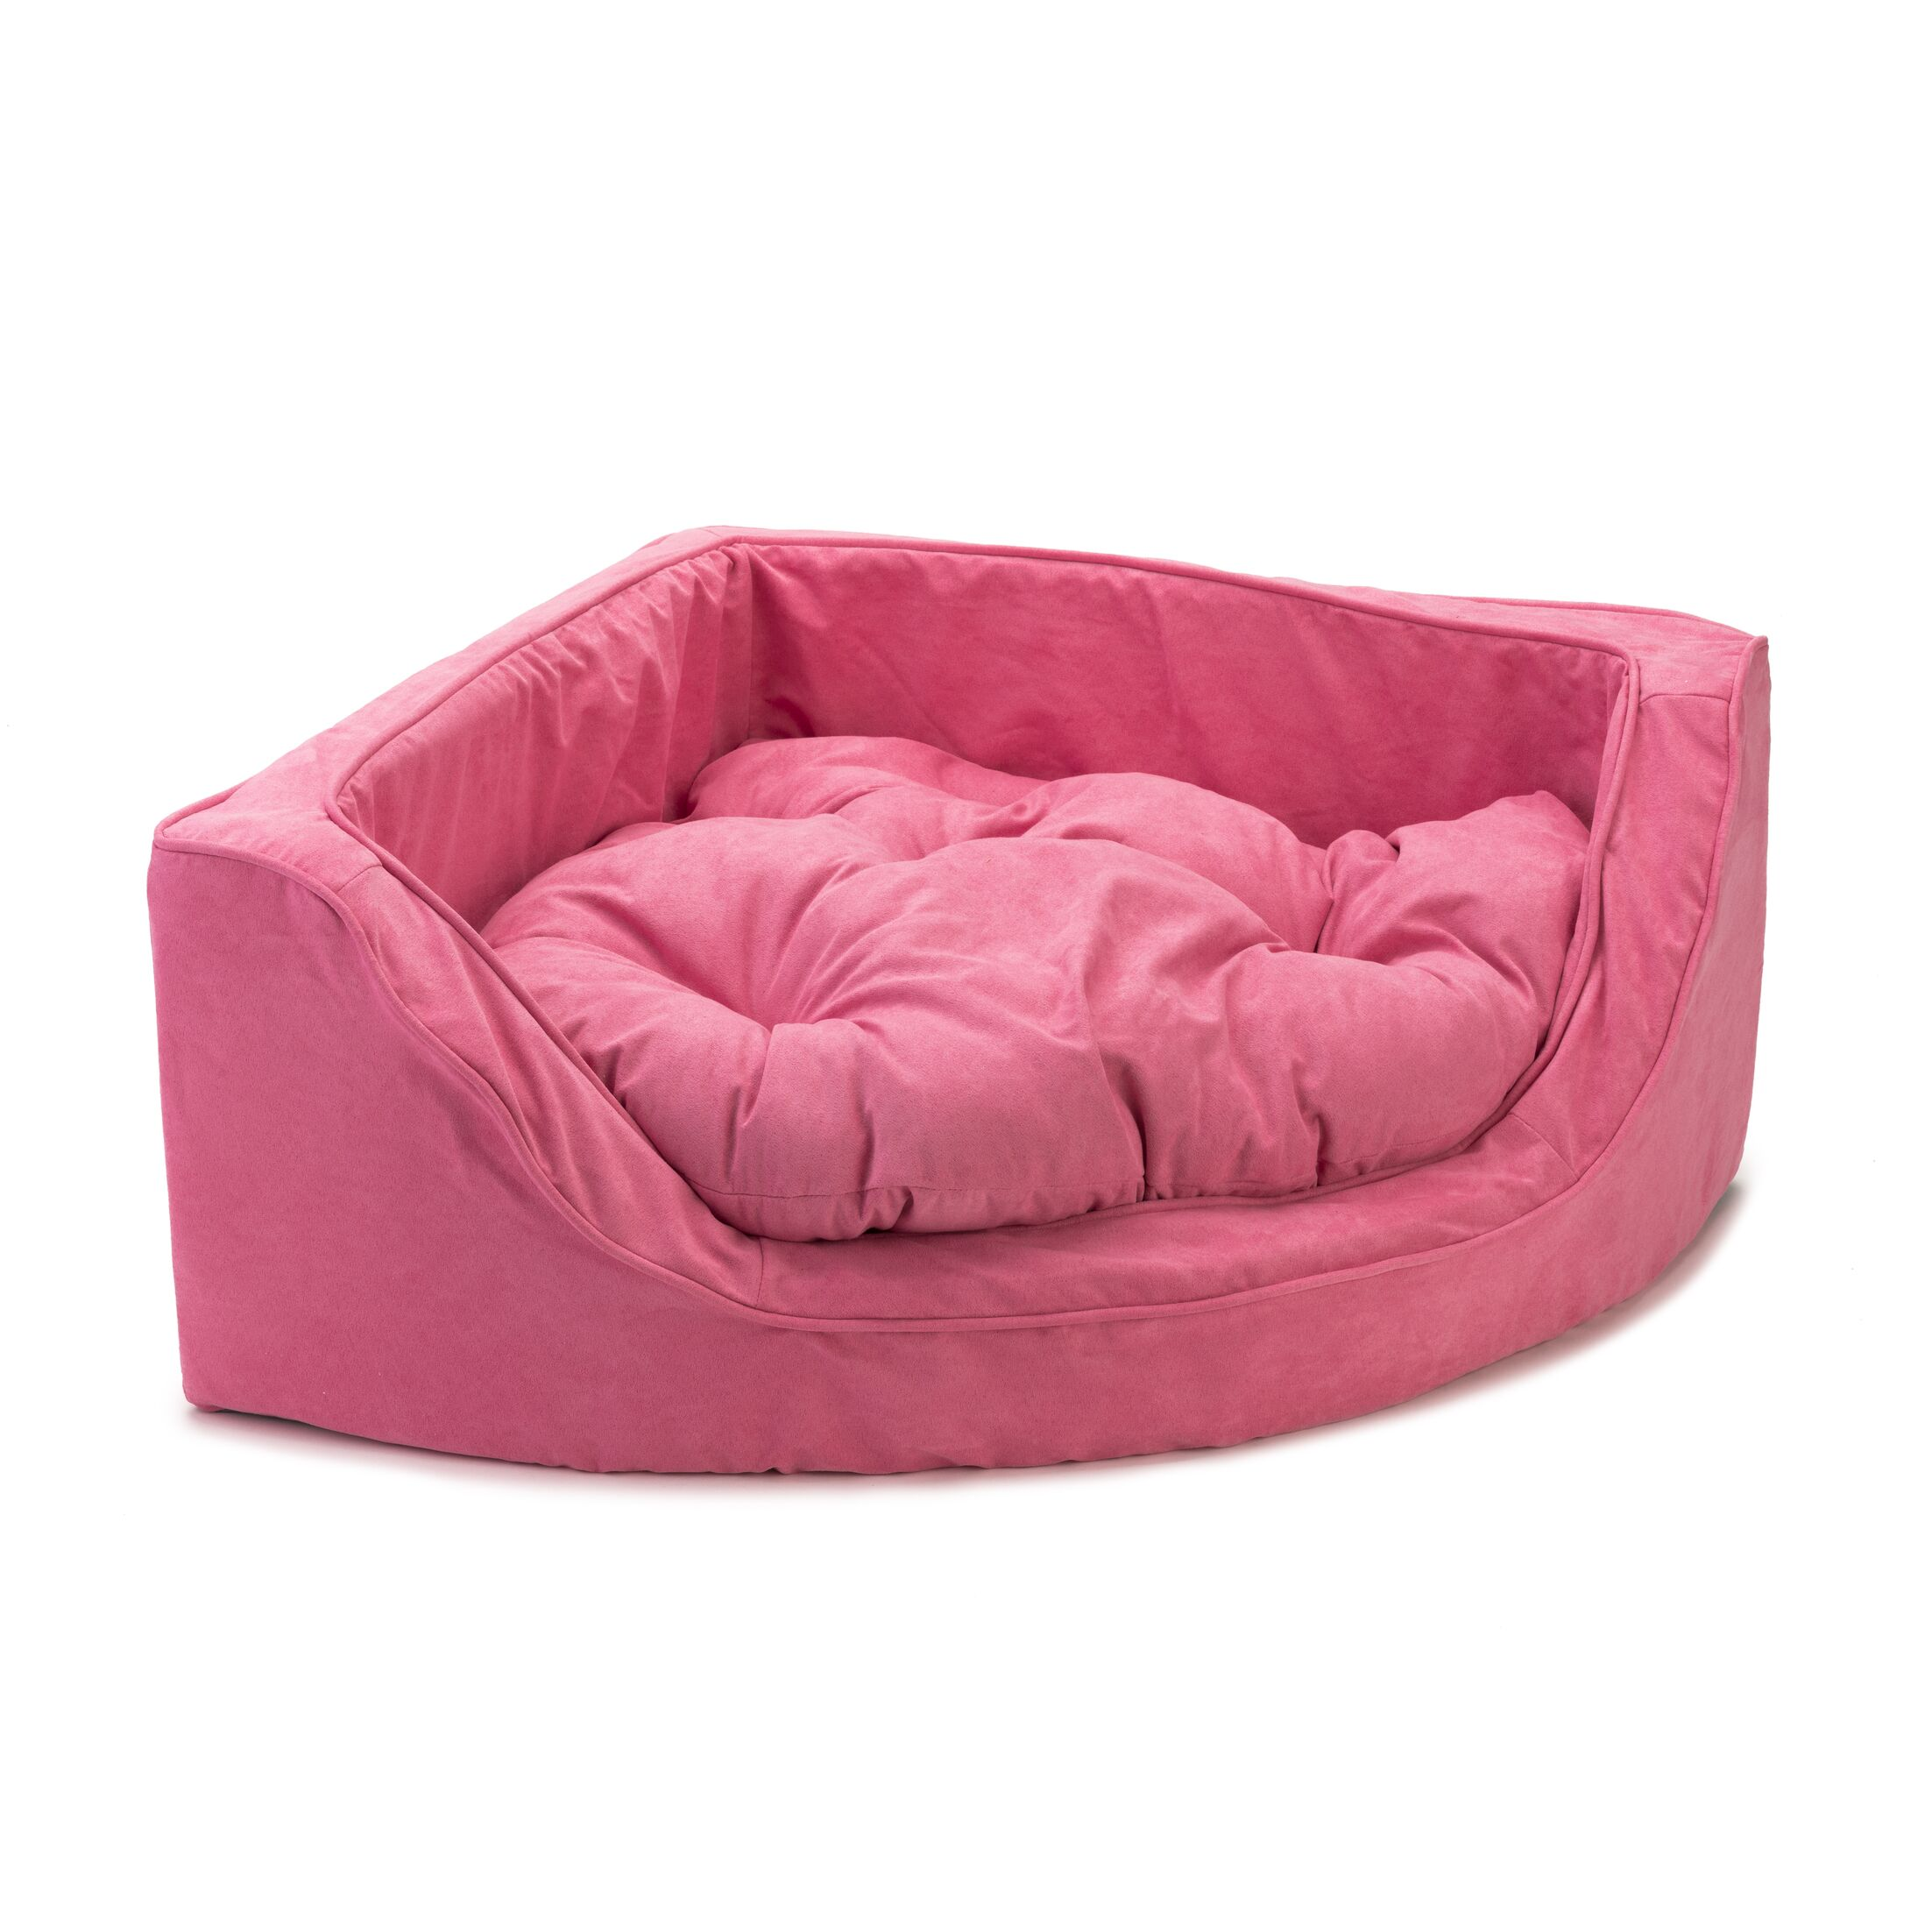 Luxury Corner Bolster Dog Bed Size: Small (22